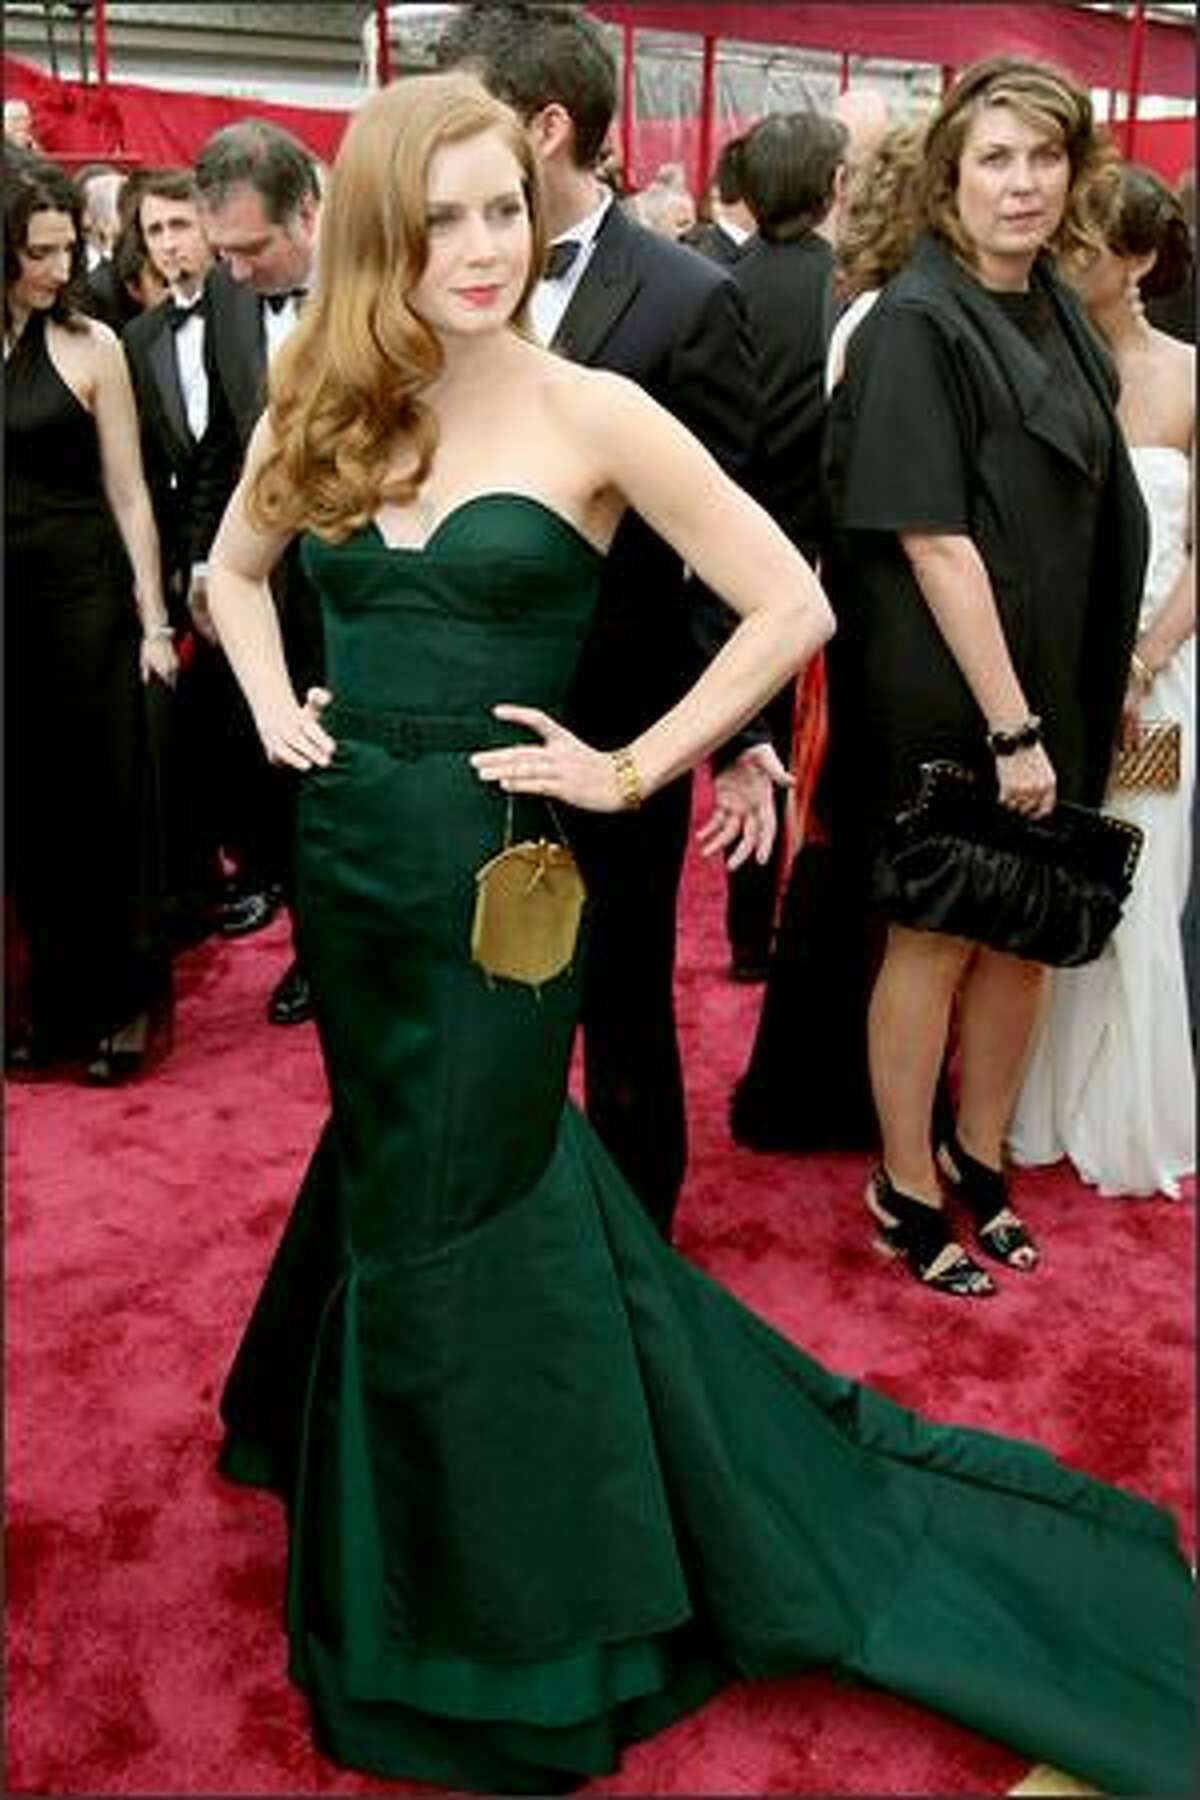 Amy Adams arrives for the 80th Annual Academy Awards at the Kodak Theater in Hollywood, California.